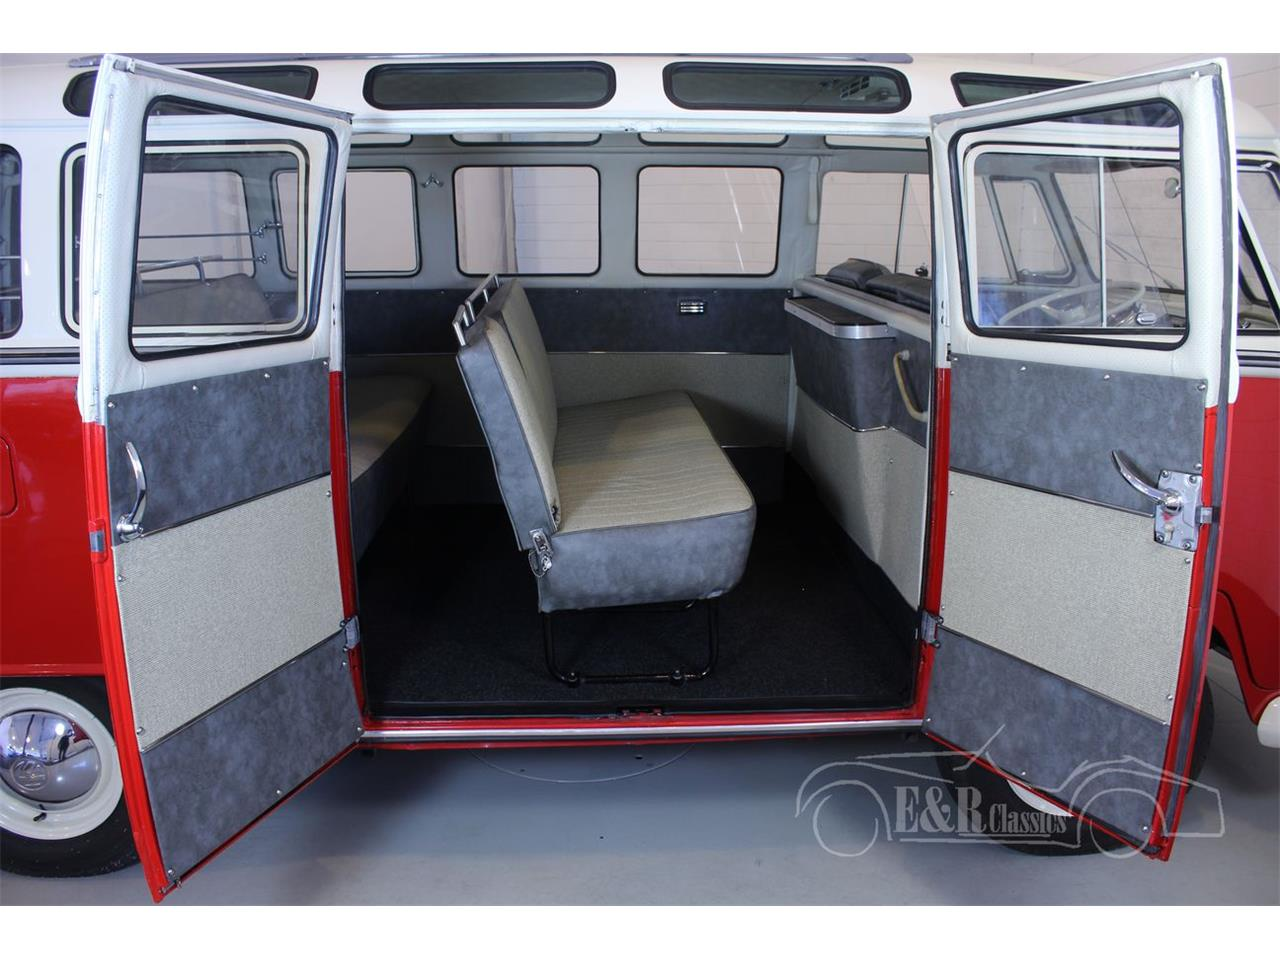 Large Picture of Classic 1966 Bus located in Noord-Brabant - $121,650.00 - O9OE